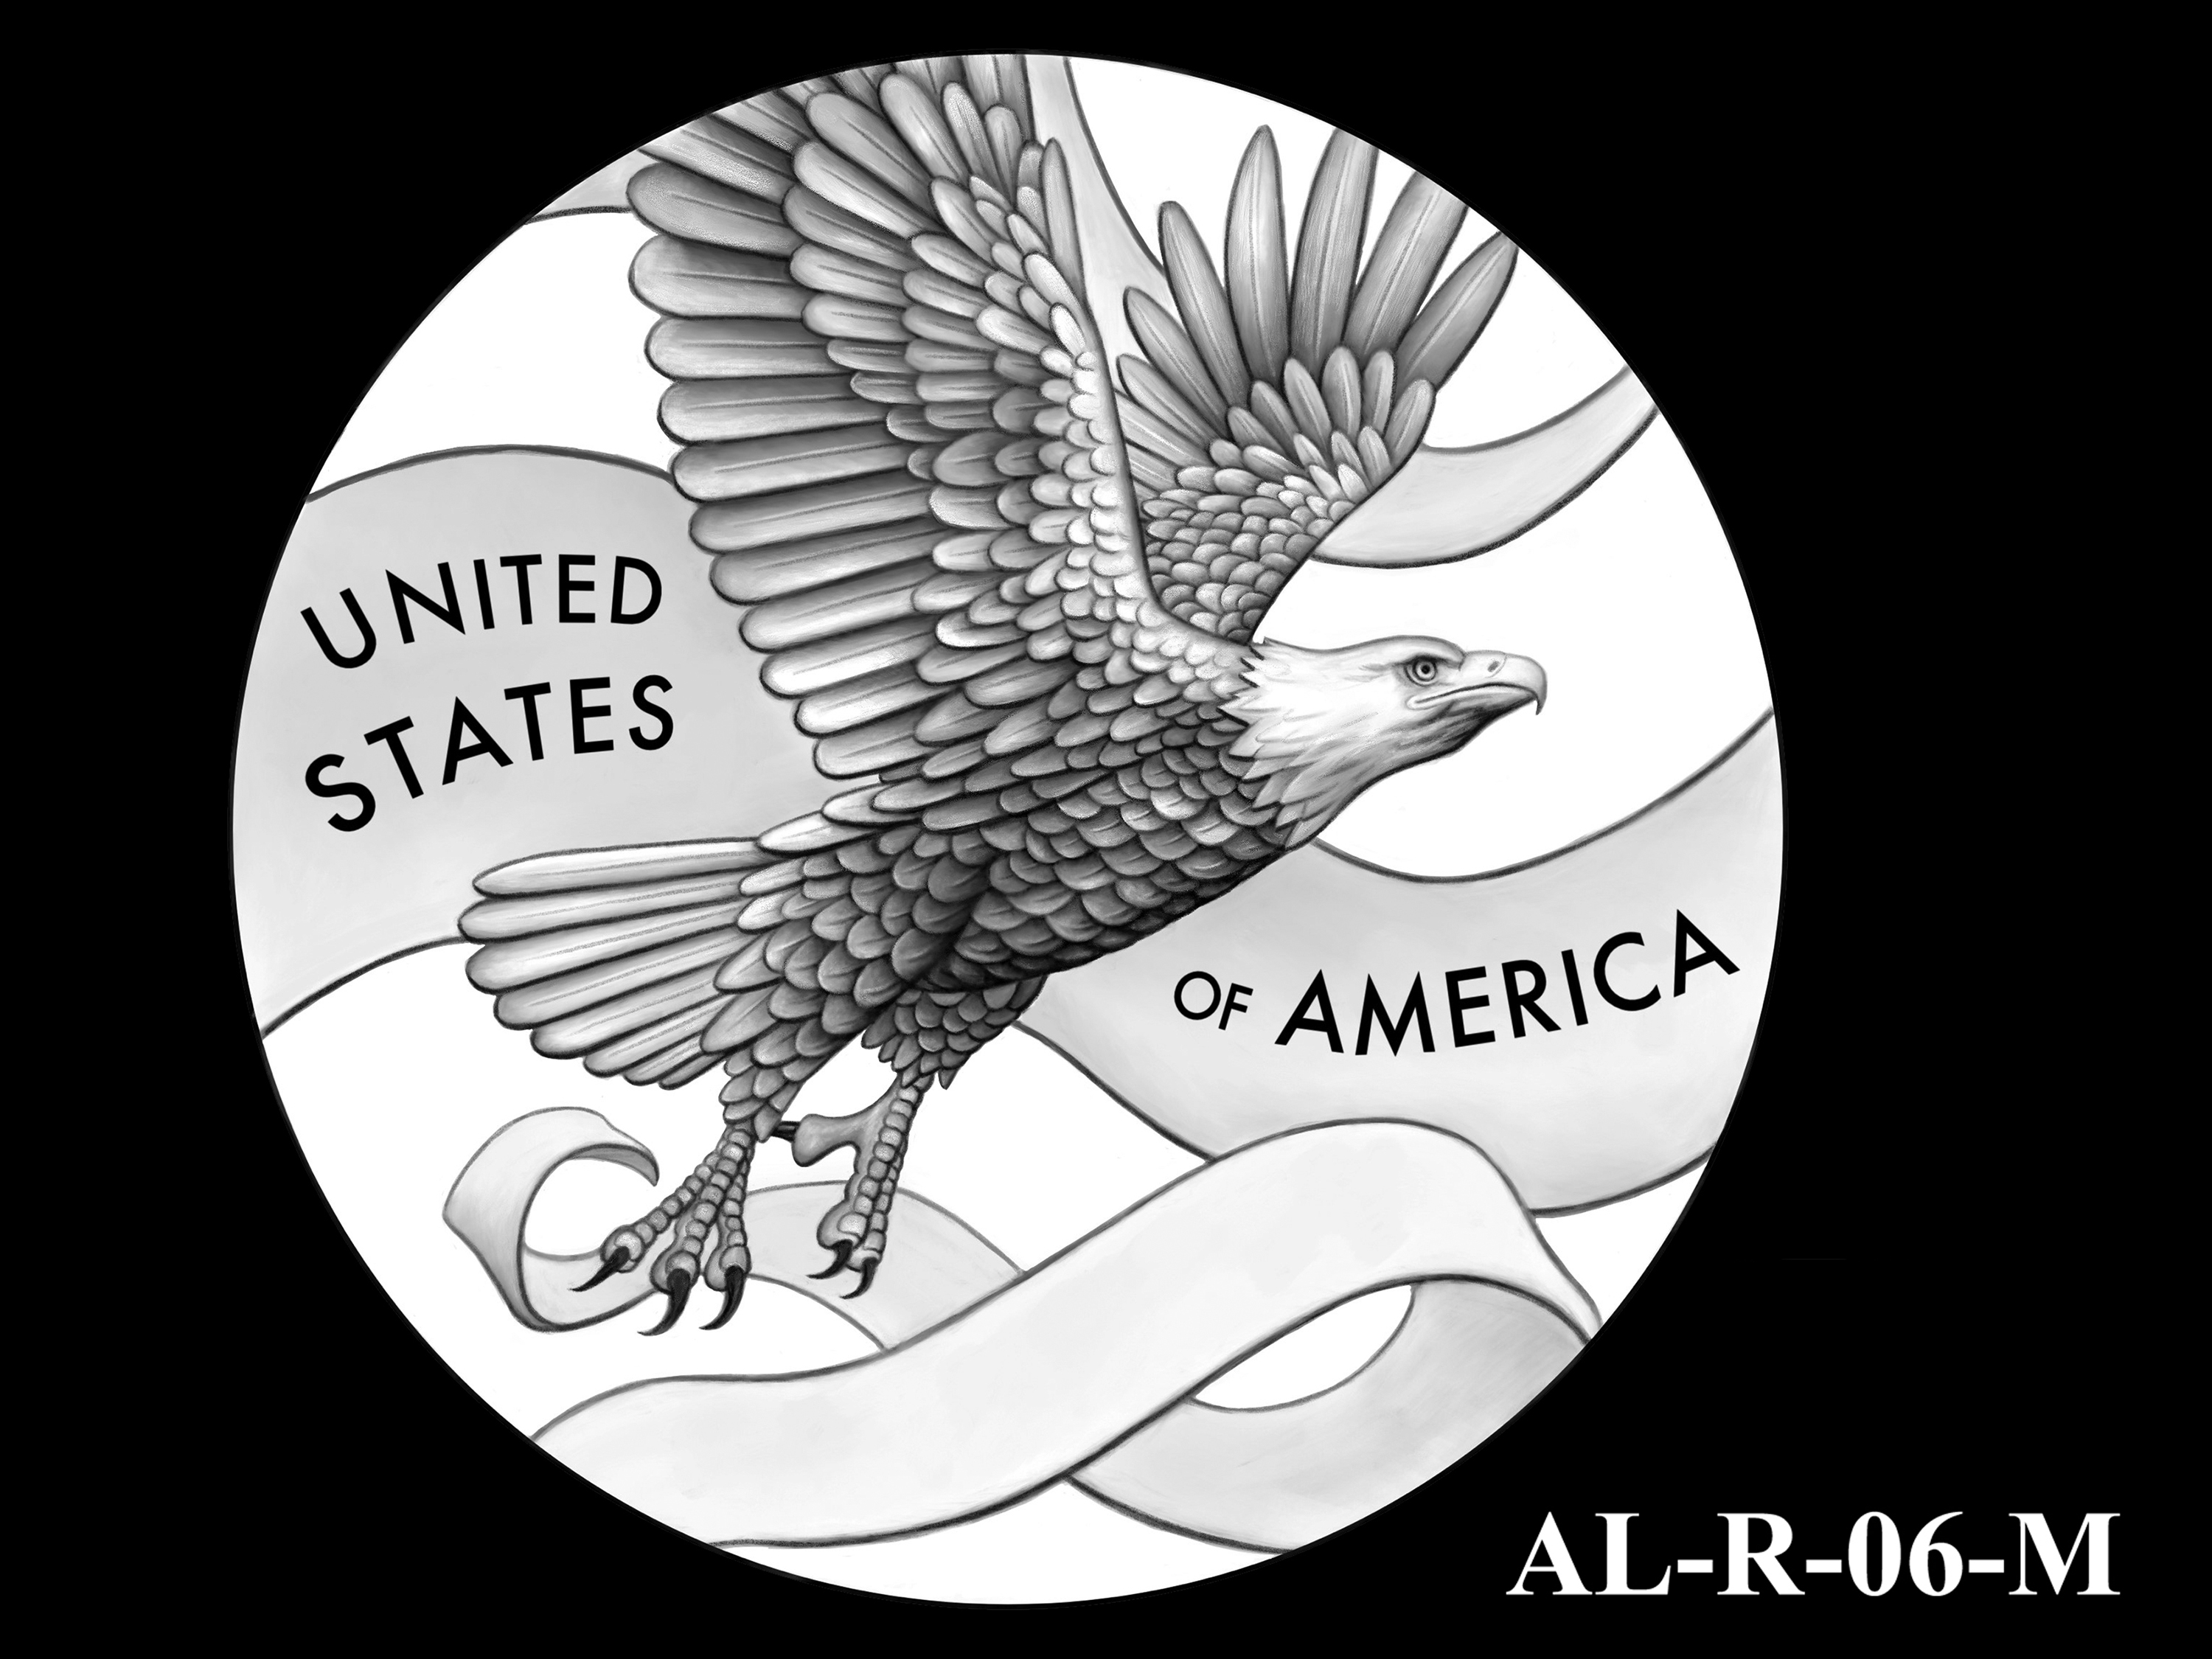 AL-R-06-M -- 2021 American Liberty Gold Coin and Silver Medal Program - Reverse